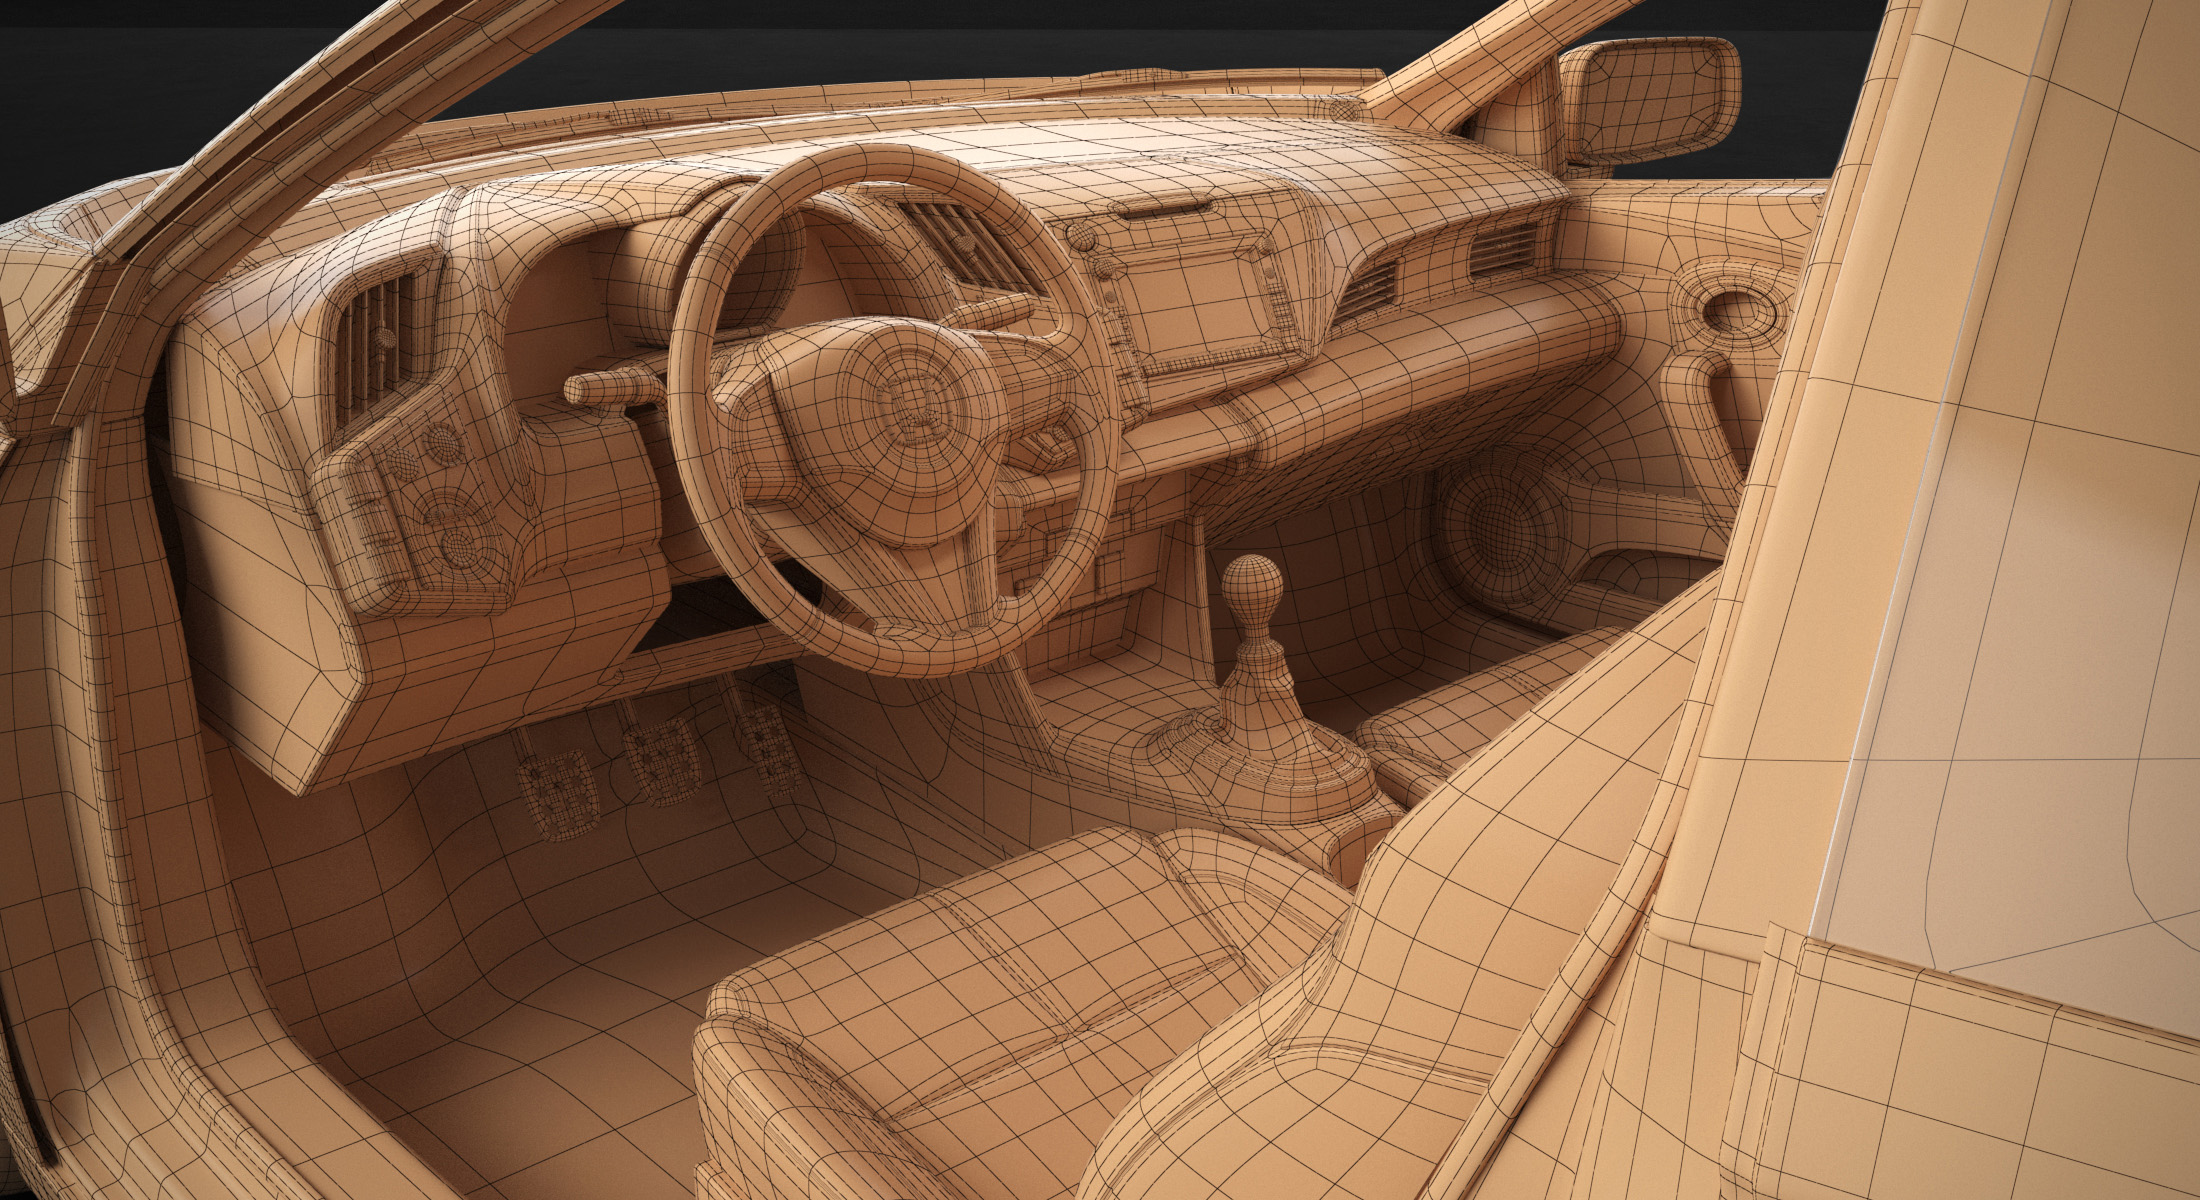 Honda Interior Wireframe 3D Model